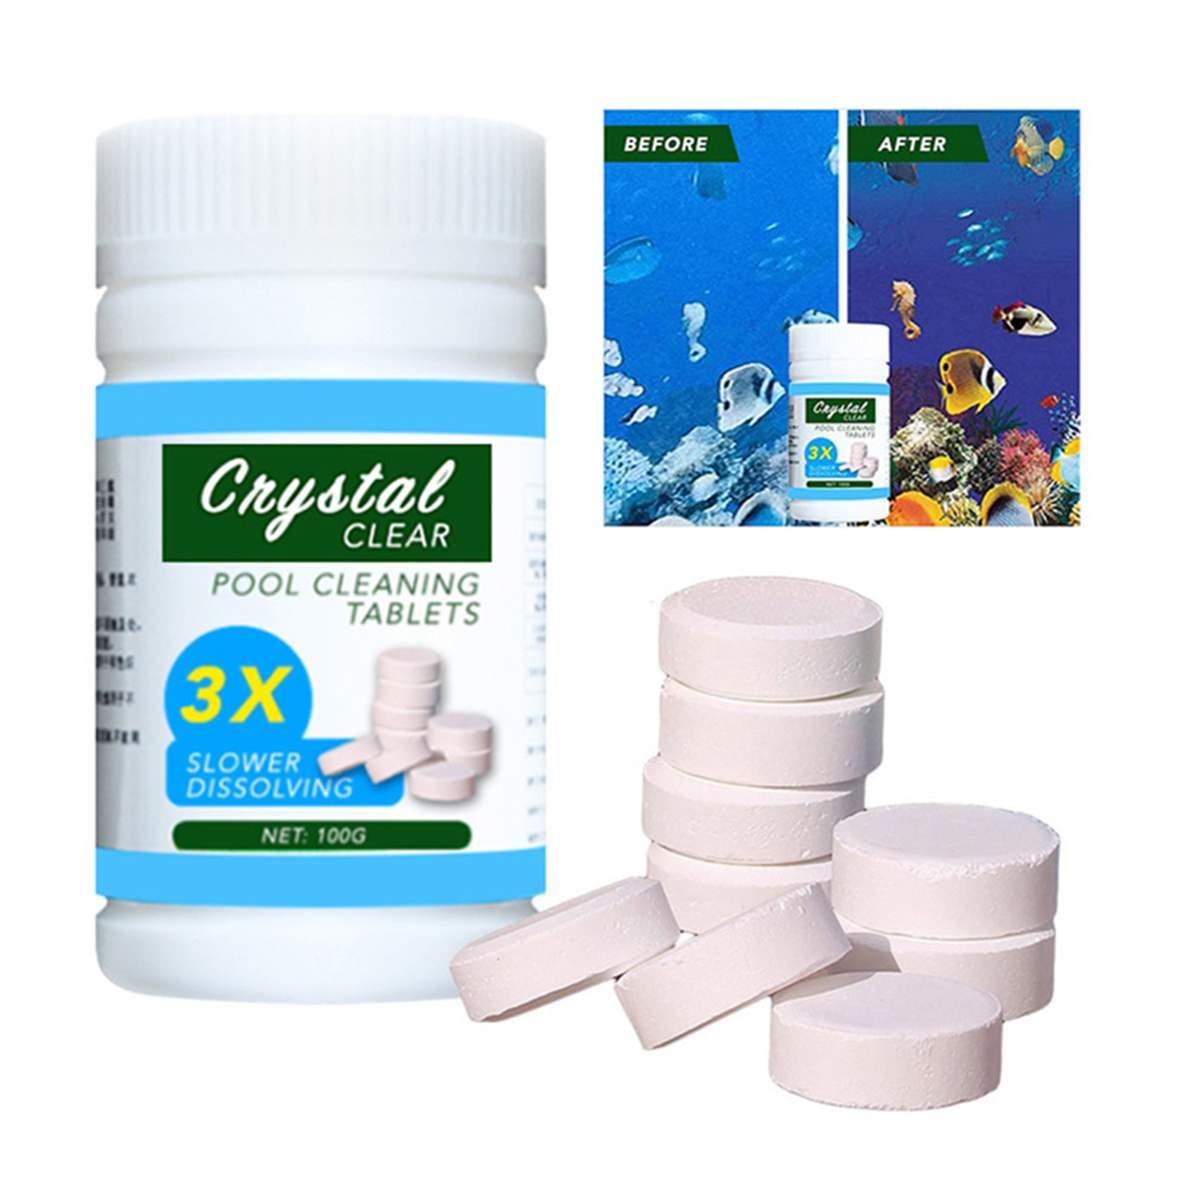 Pool Cleaning Tablet